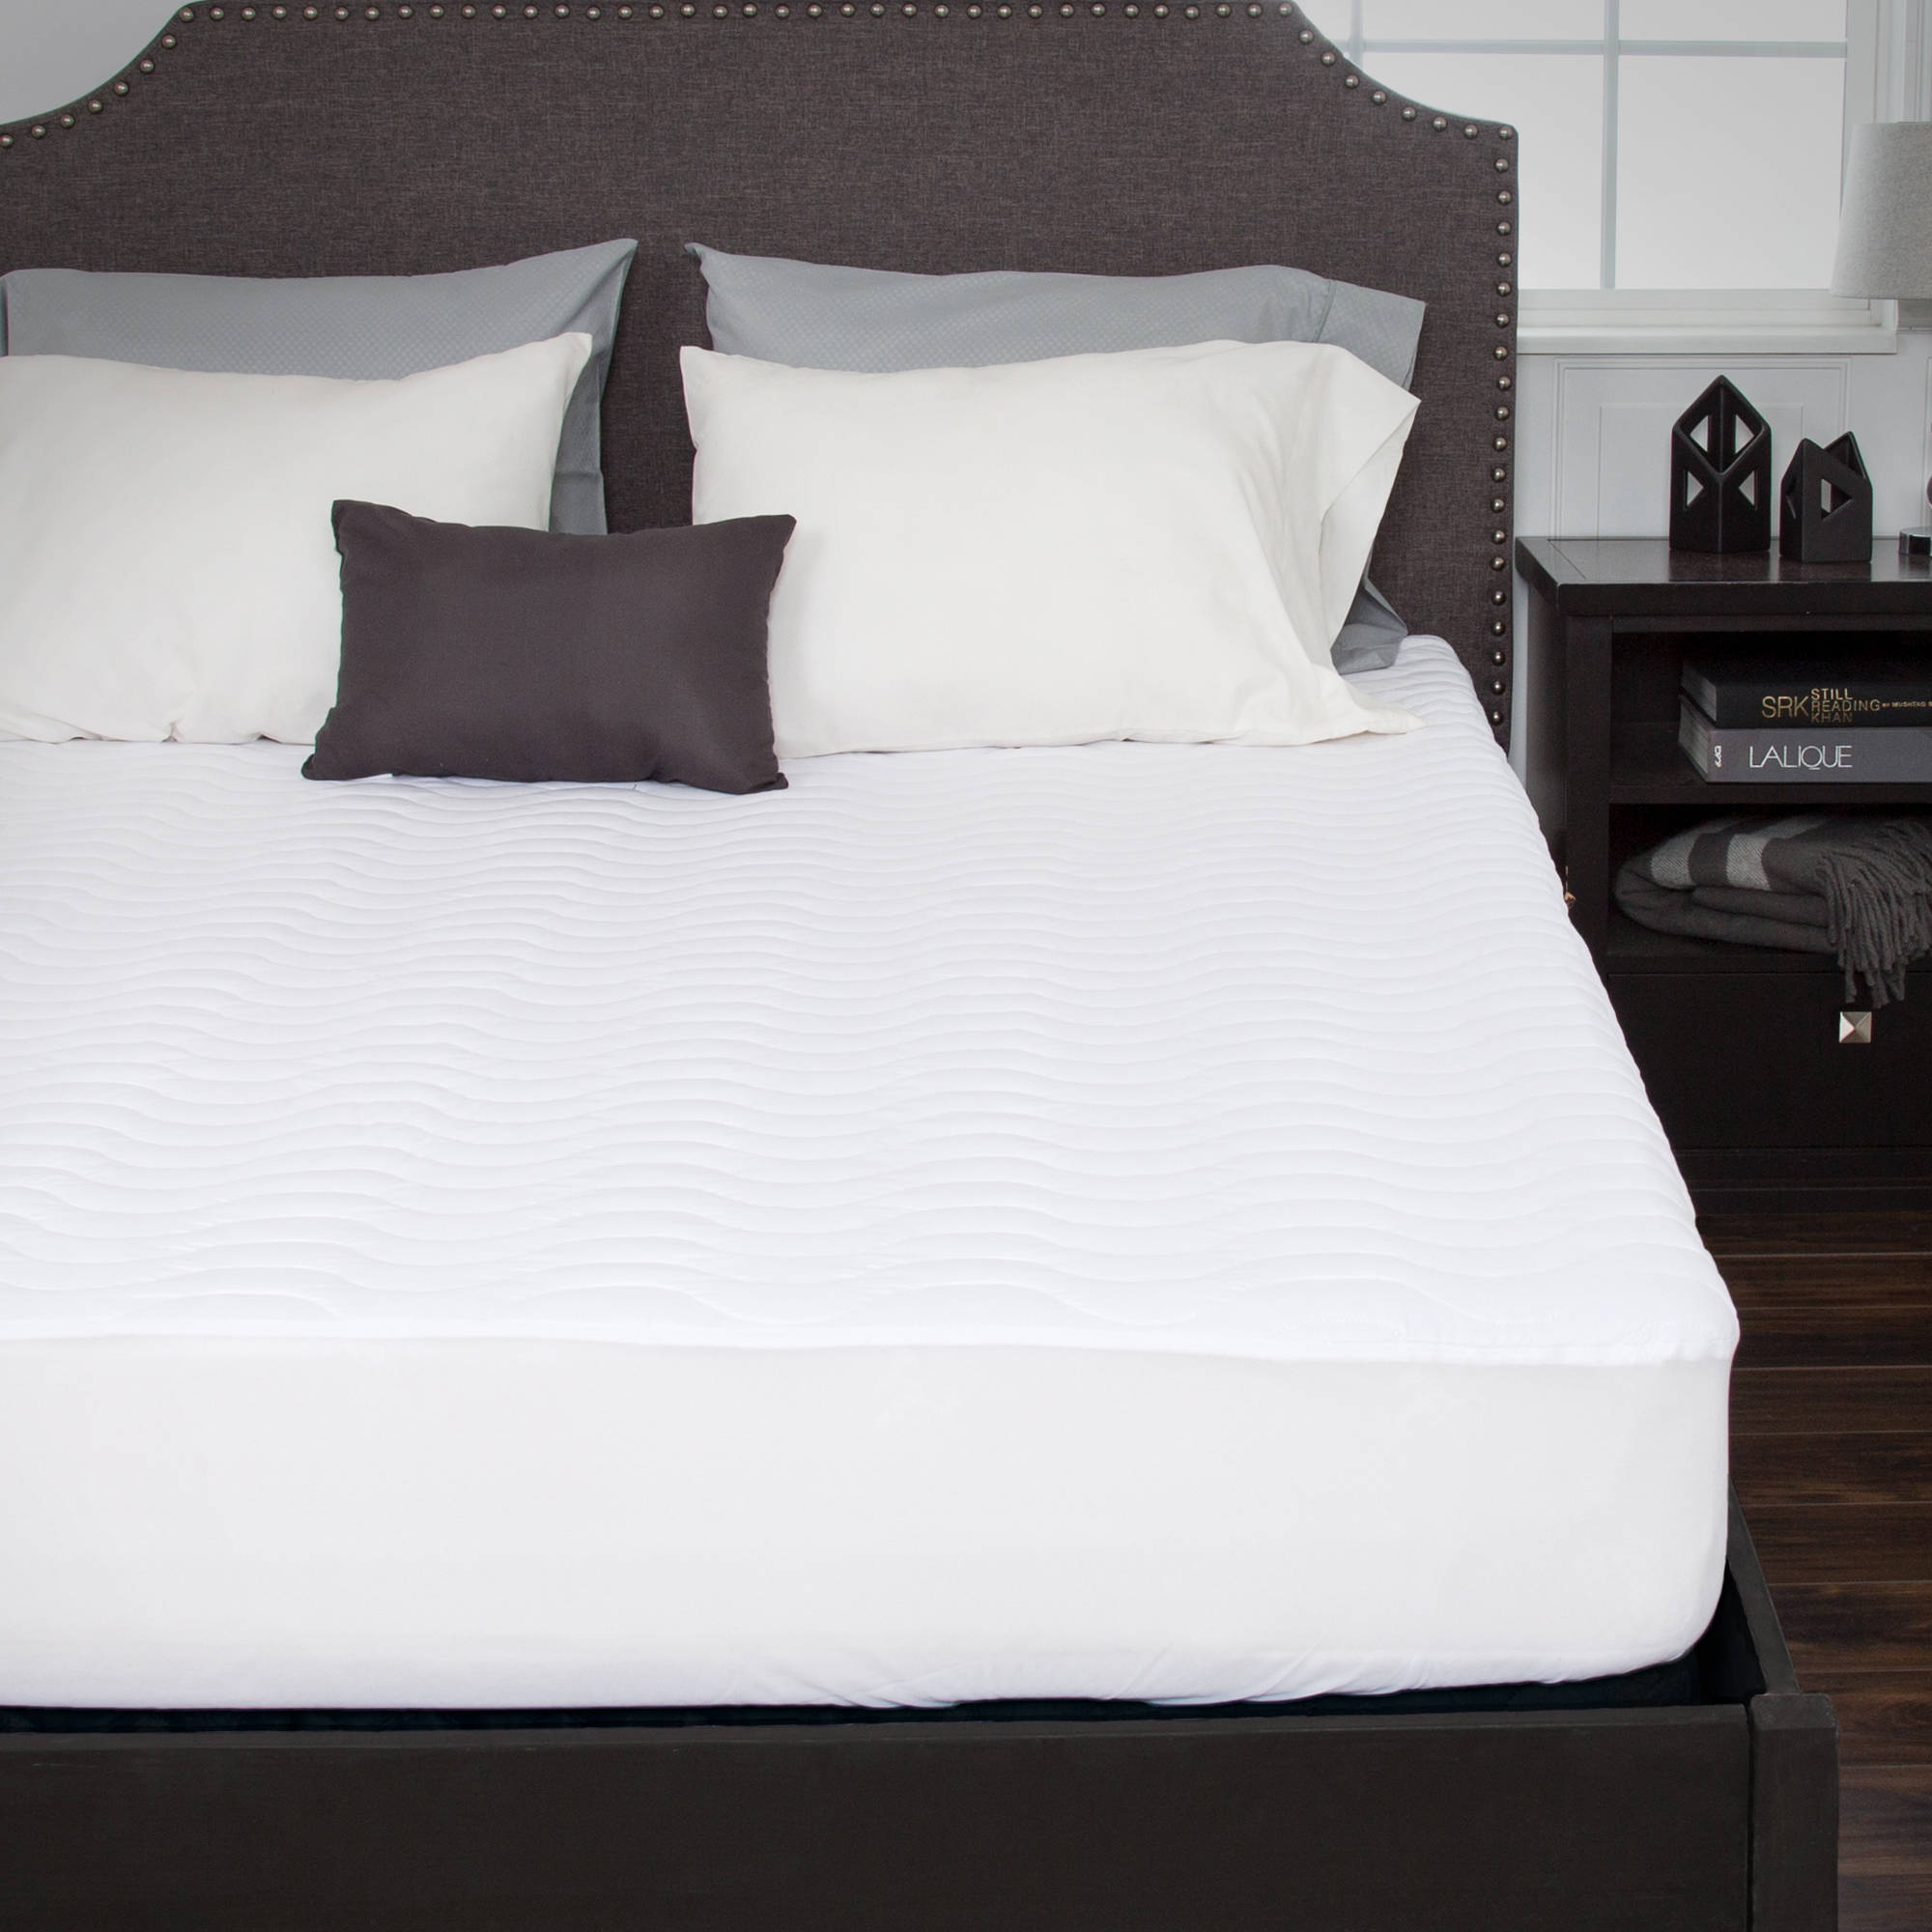 Somerset Home Down Alternative Mattress Pad with Fitted Skirt by Trademark Global LLC